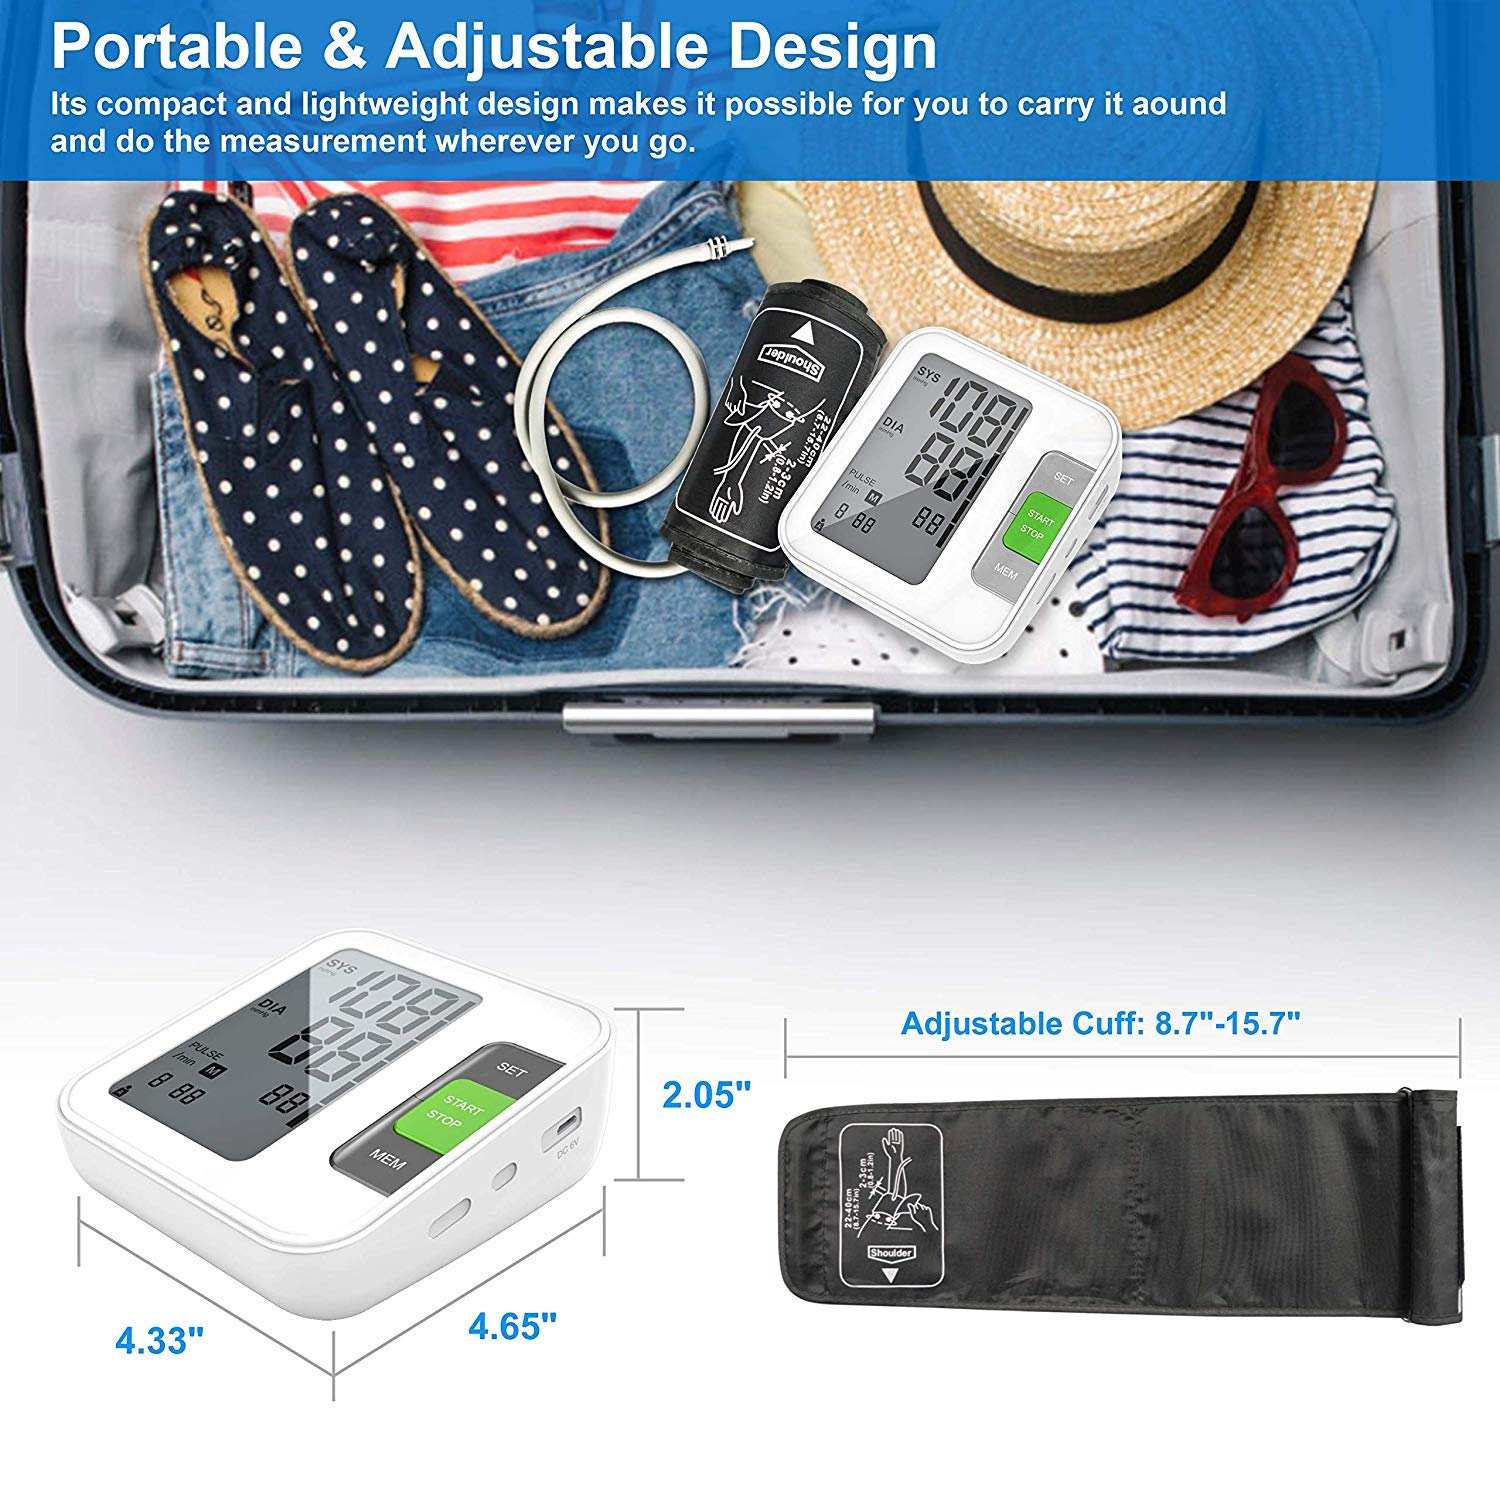 Latest Brand Blood Pressure Monitor - Approved for Arm Use - Digital Blood Pressure Machine BP ALLFORYOU091102 by STARLIKE